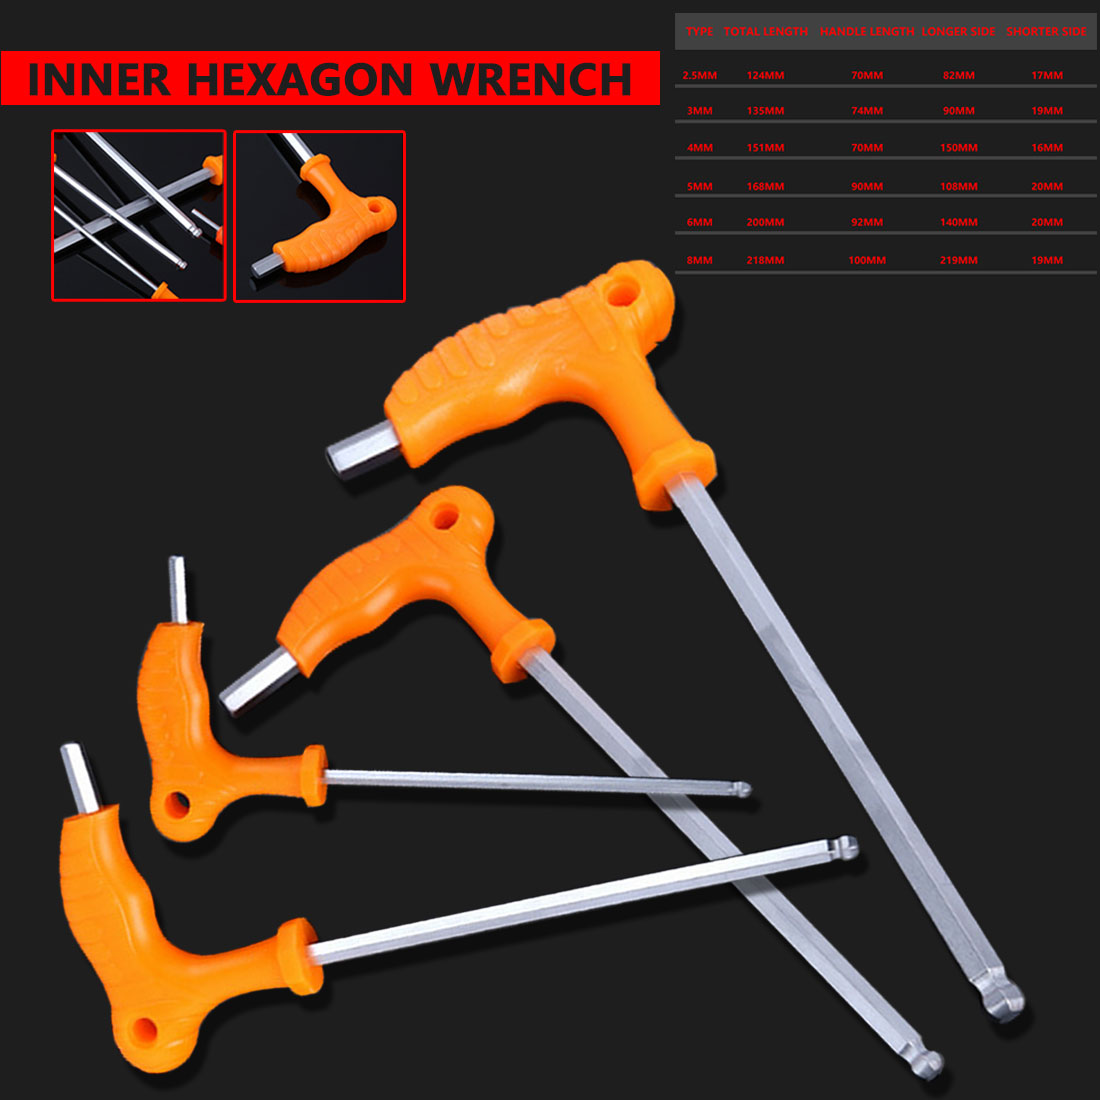 T Handle Allen Hex Key Wrench Spanner 2.5/3/4/5/6/8mm High-carbon Steel Inner Hexagon Wrench Hand Tool